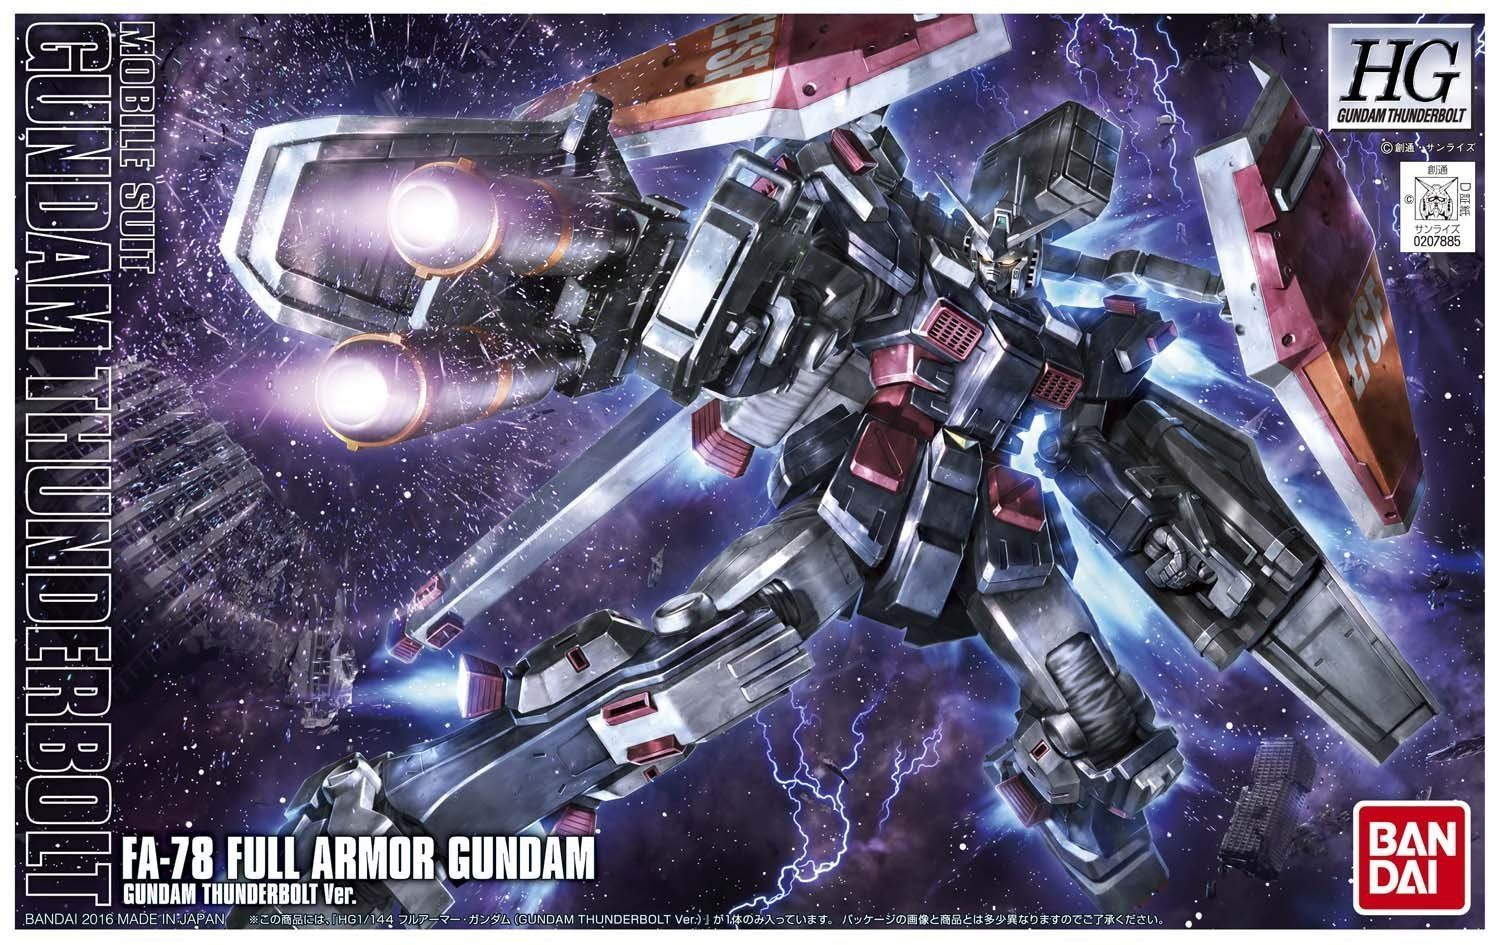 BANDAI GUNDAM DECAL-MOBILE SUIT Thunderbolt multiuse 1 per 1//144 MODEL KIT